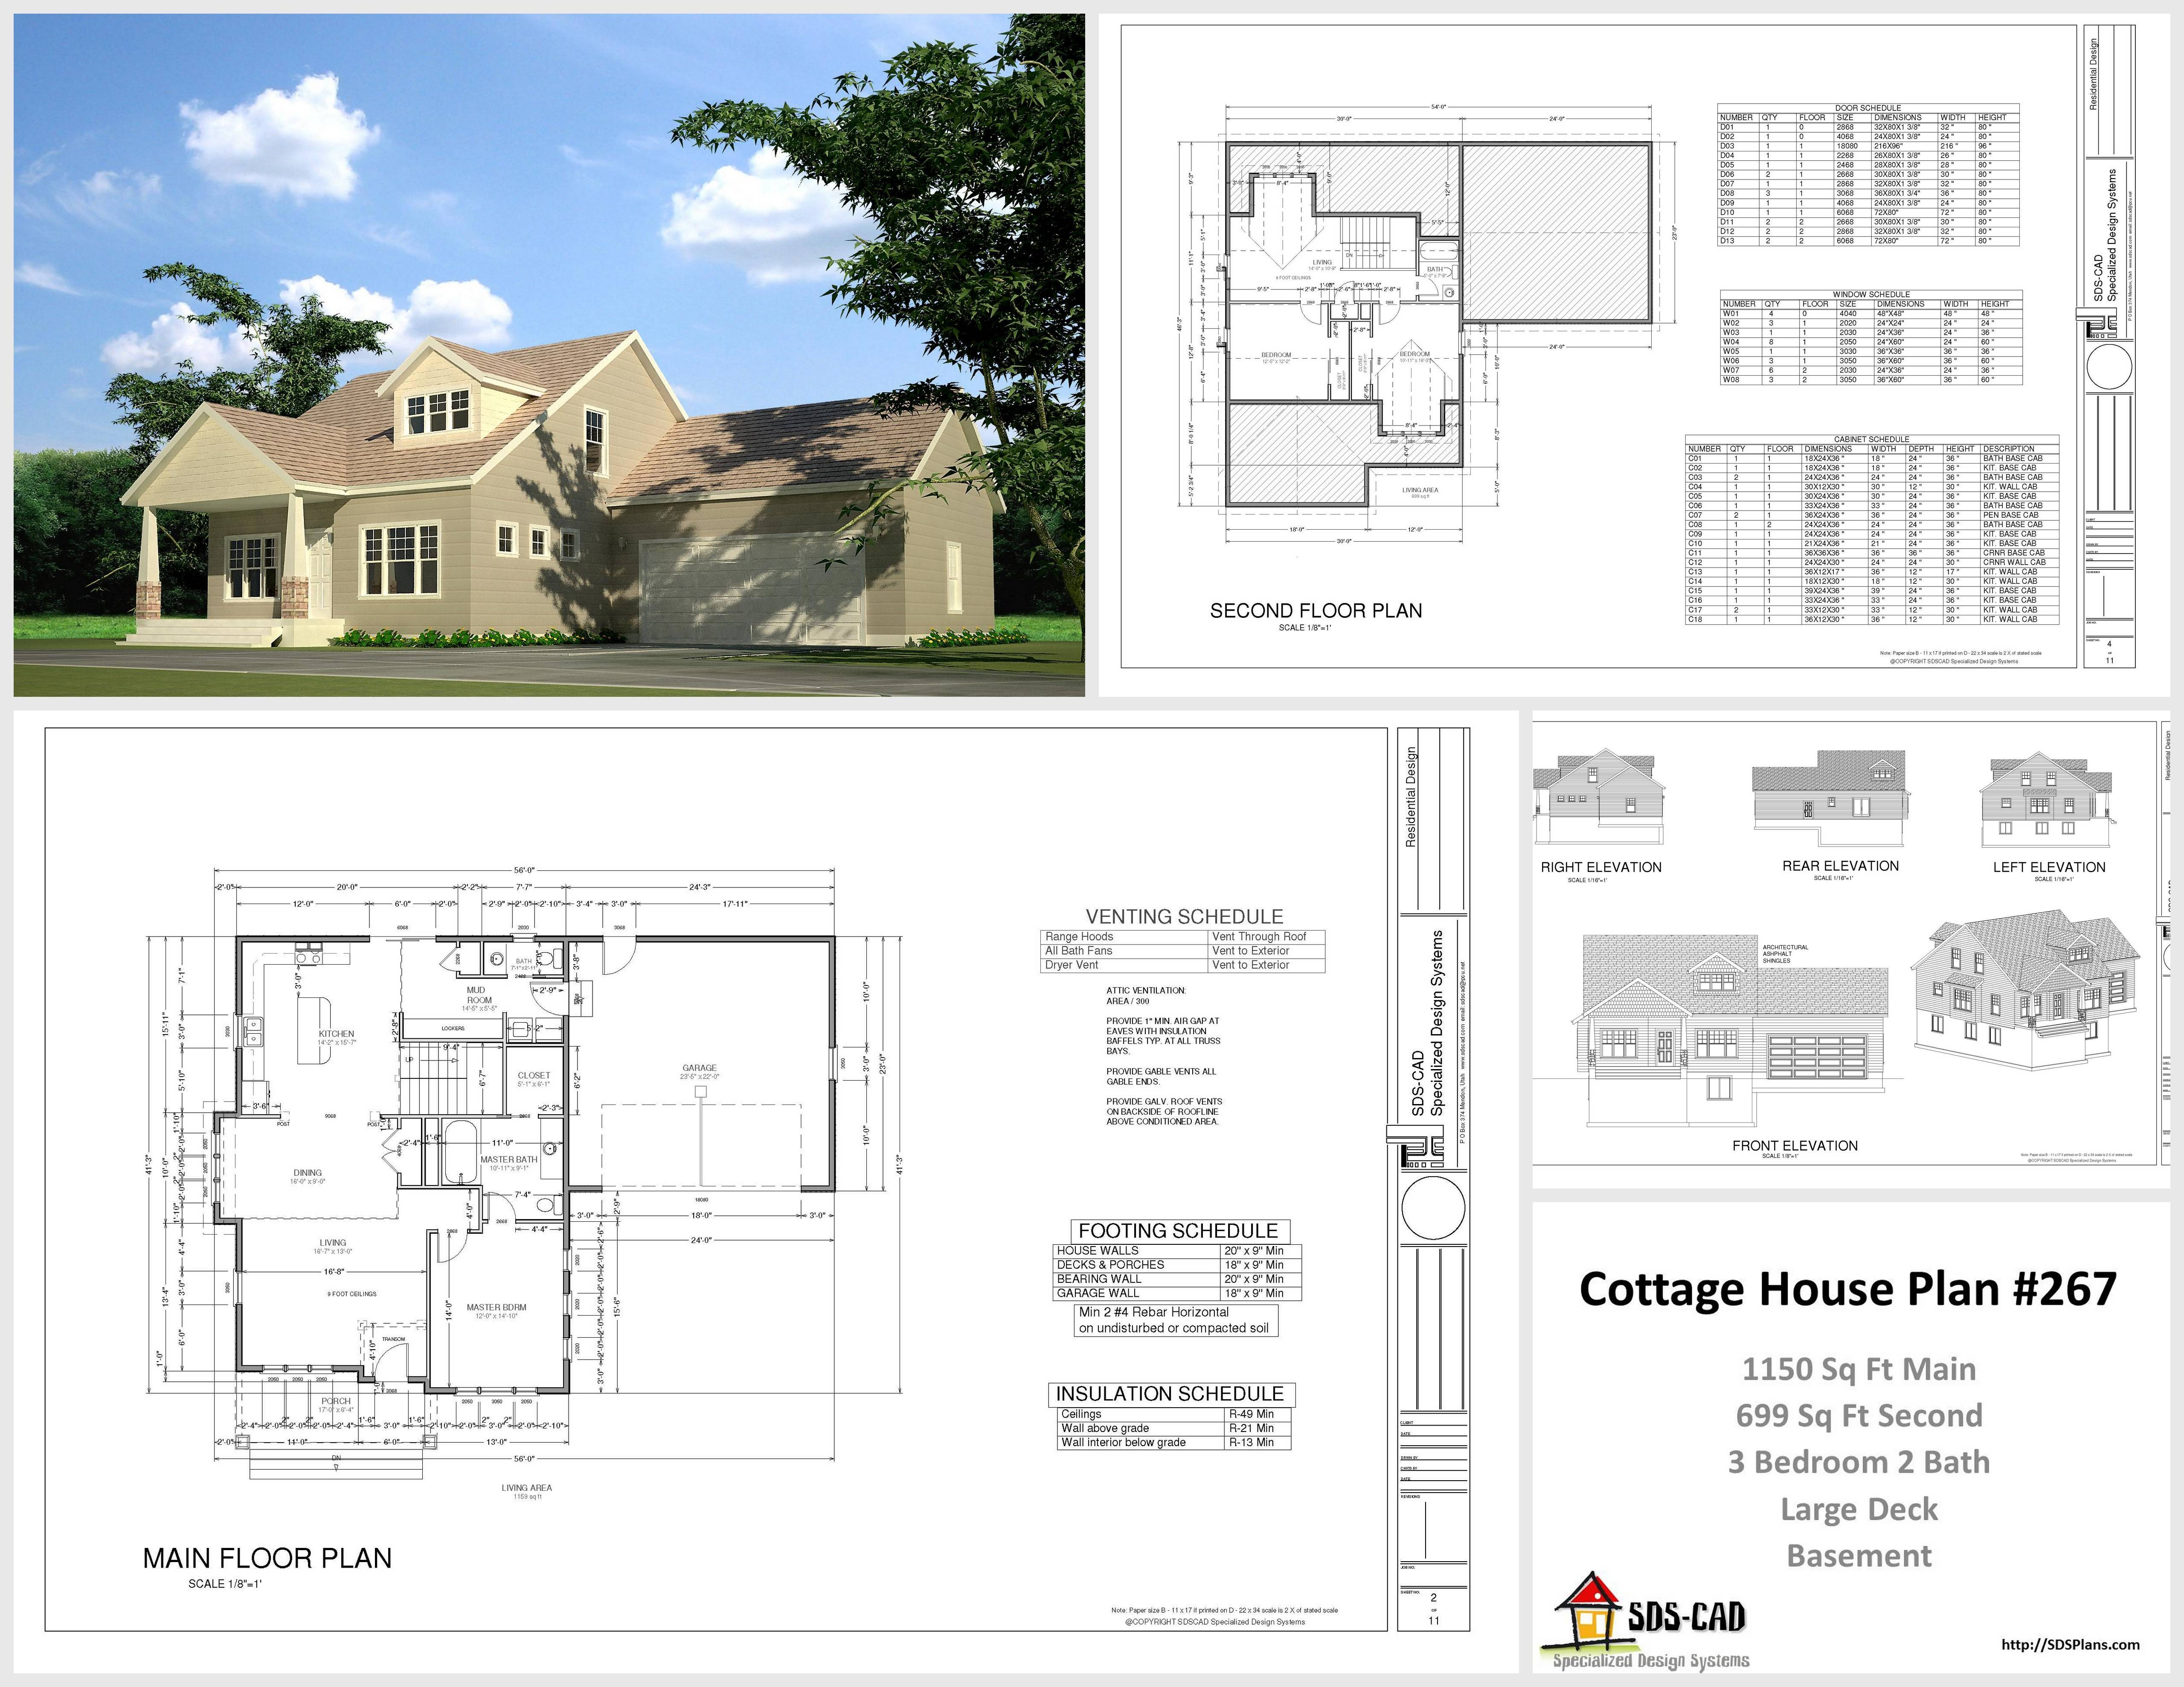 Awesome 24 Dream House Blueprints Free Photo House Plans 440 Largest Home Design Picture Inspirations Pitcheantrous